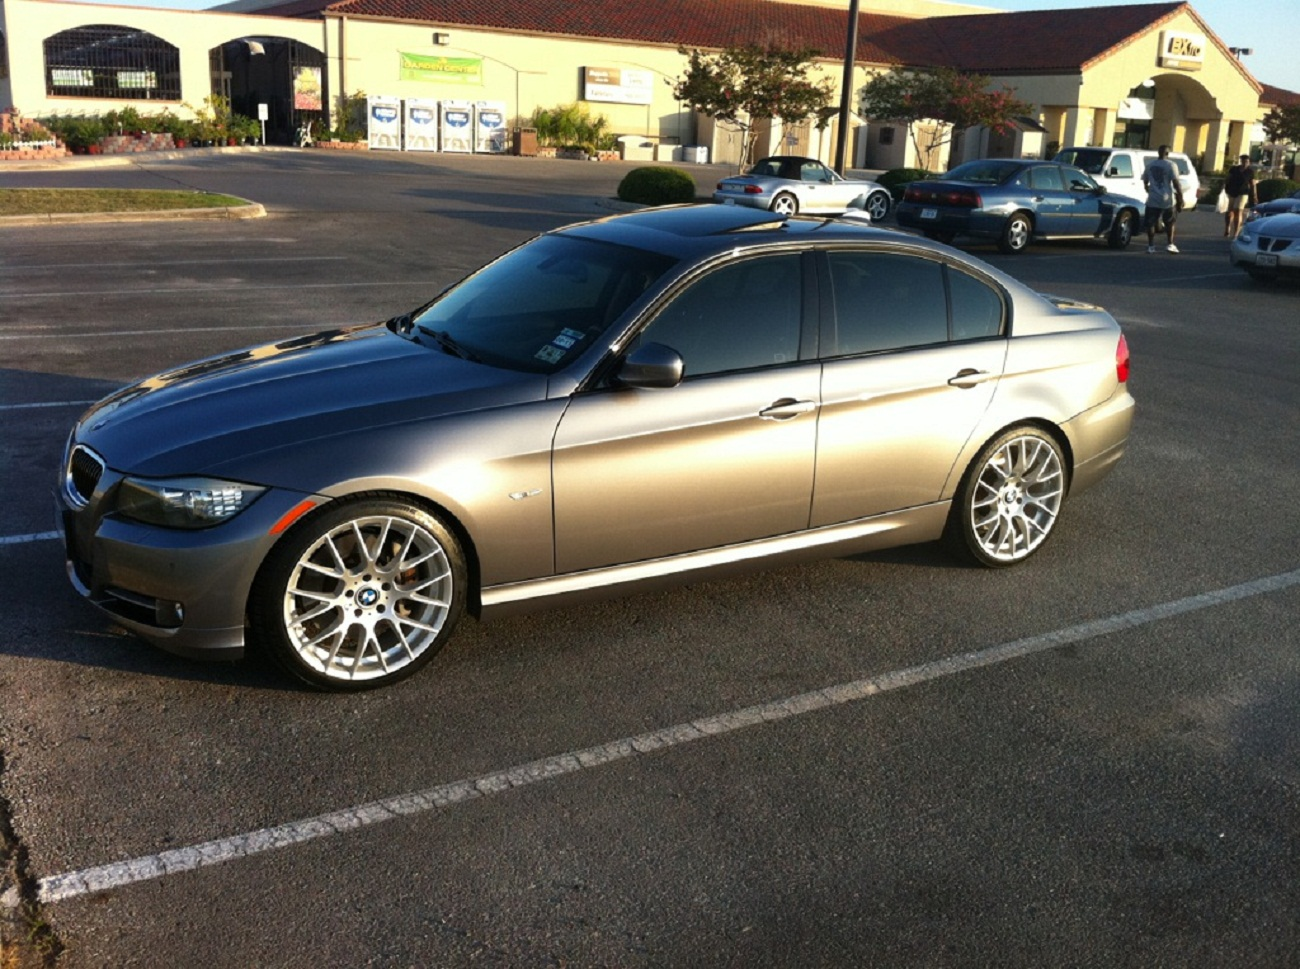 335i lci space grey with m3 competition rims replicas. Black Bedroom Furniture Sets. Home Design Ideas